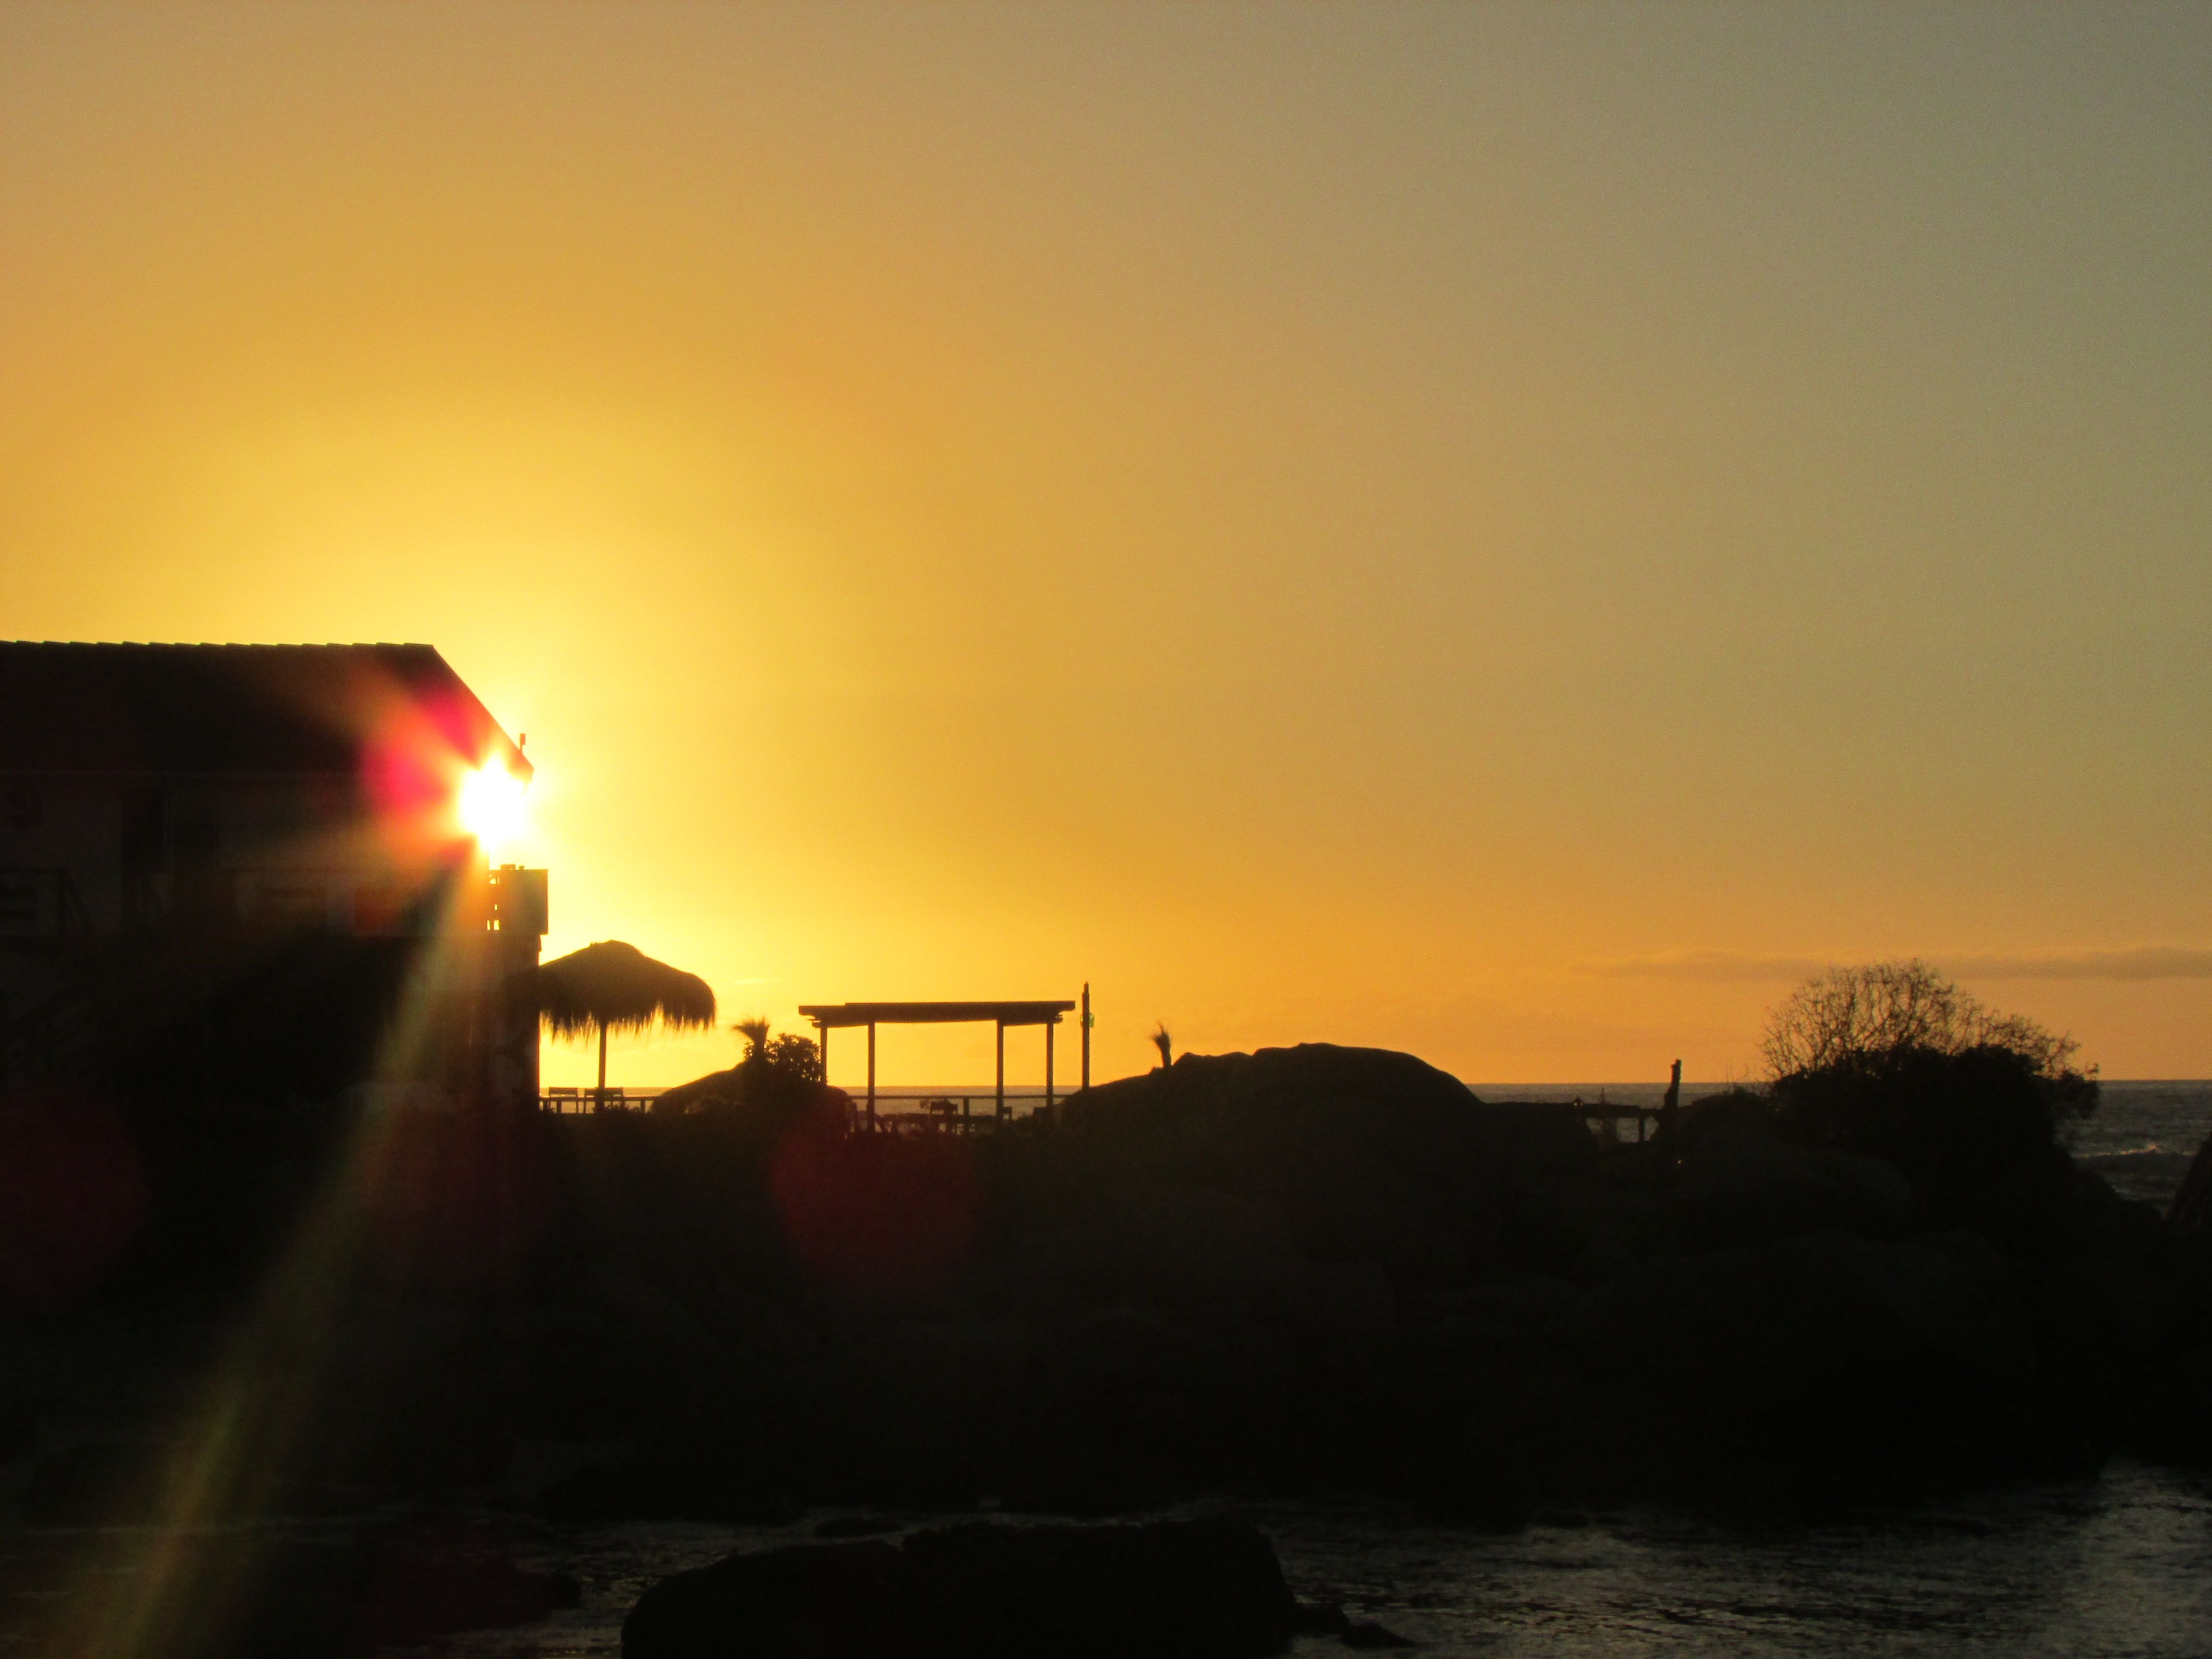 SUNSET, BEACH, MAITENCILLO, CHILE